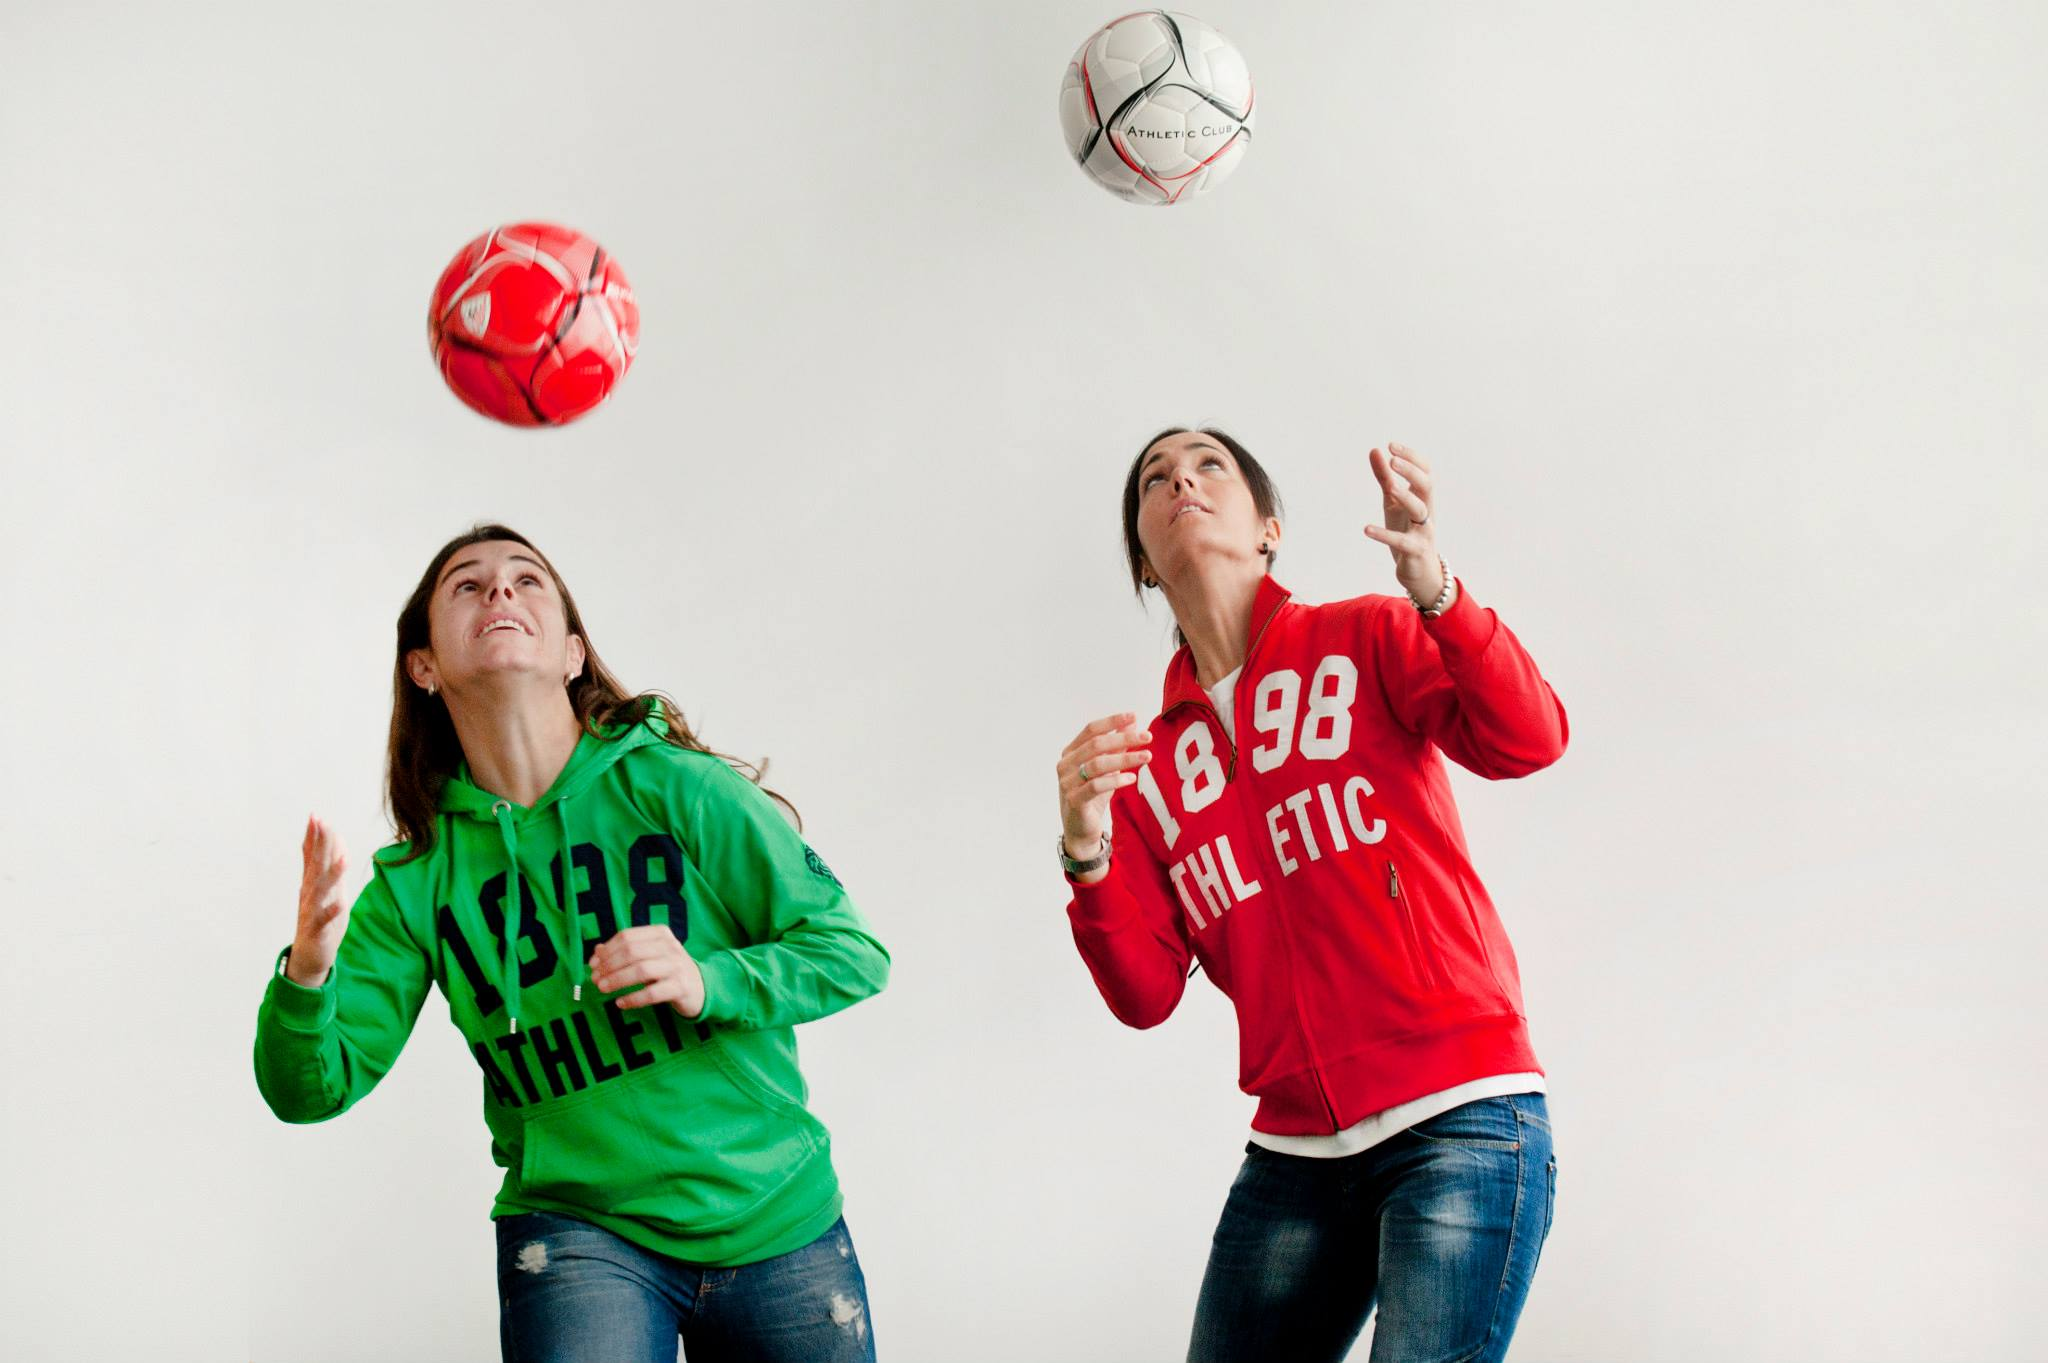 The women's team of Athletic Bilbao will be teaching a youth soccer camp.